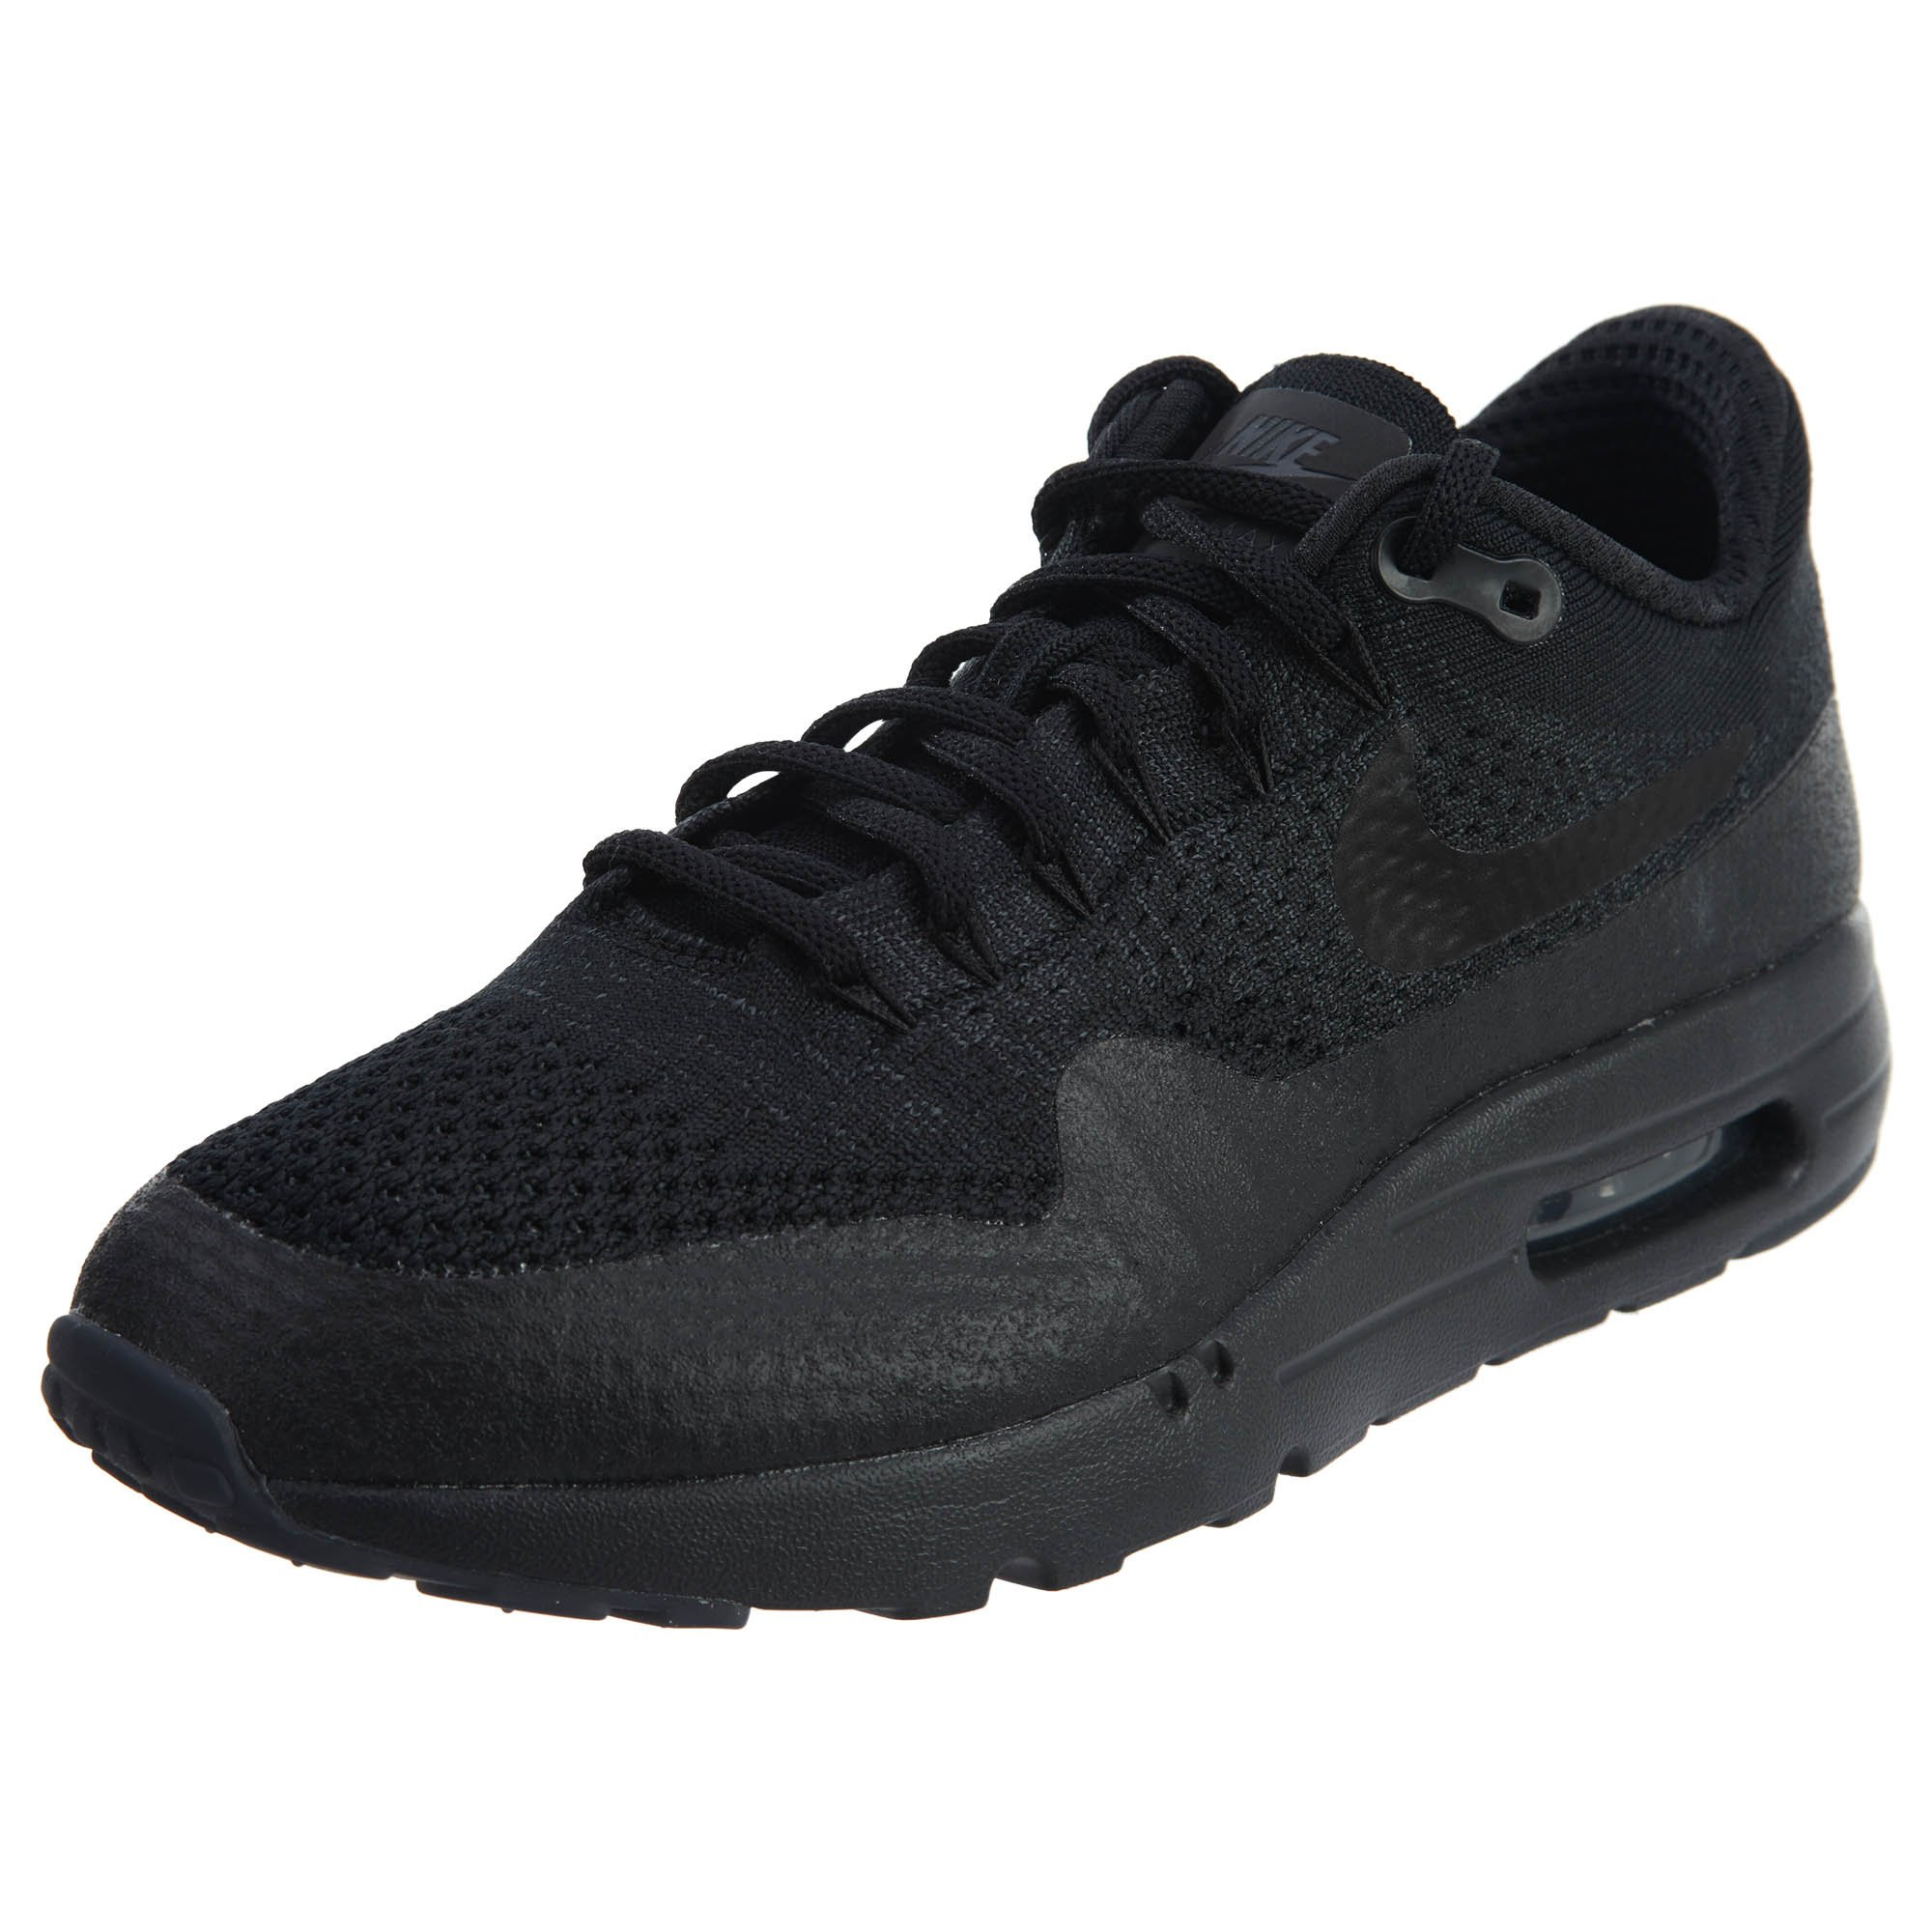 purchase cheap 3d024 e5fdc Galleon - Nike Air Max 1 Ultra Flyknit Mens Running Trainers 859658  Sneakers Shoes (11) Black Anthracite